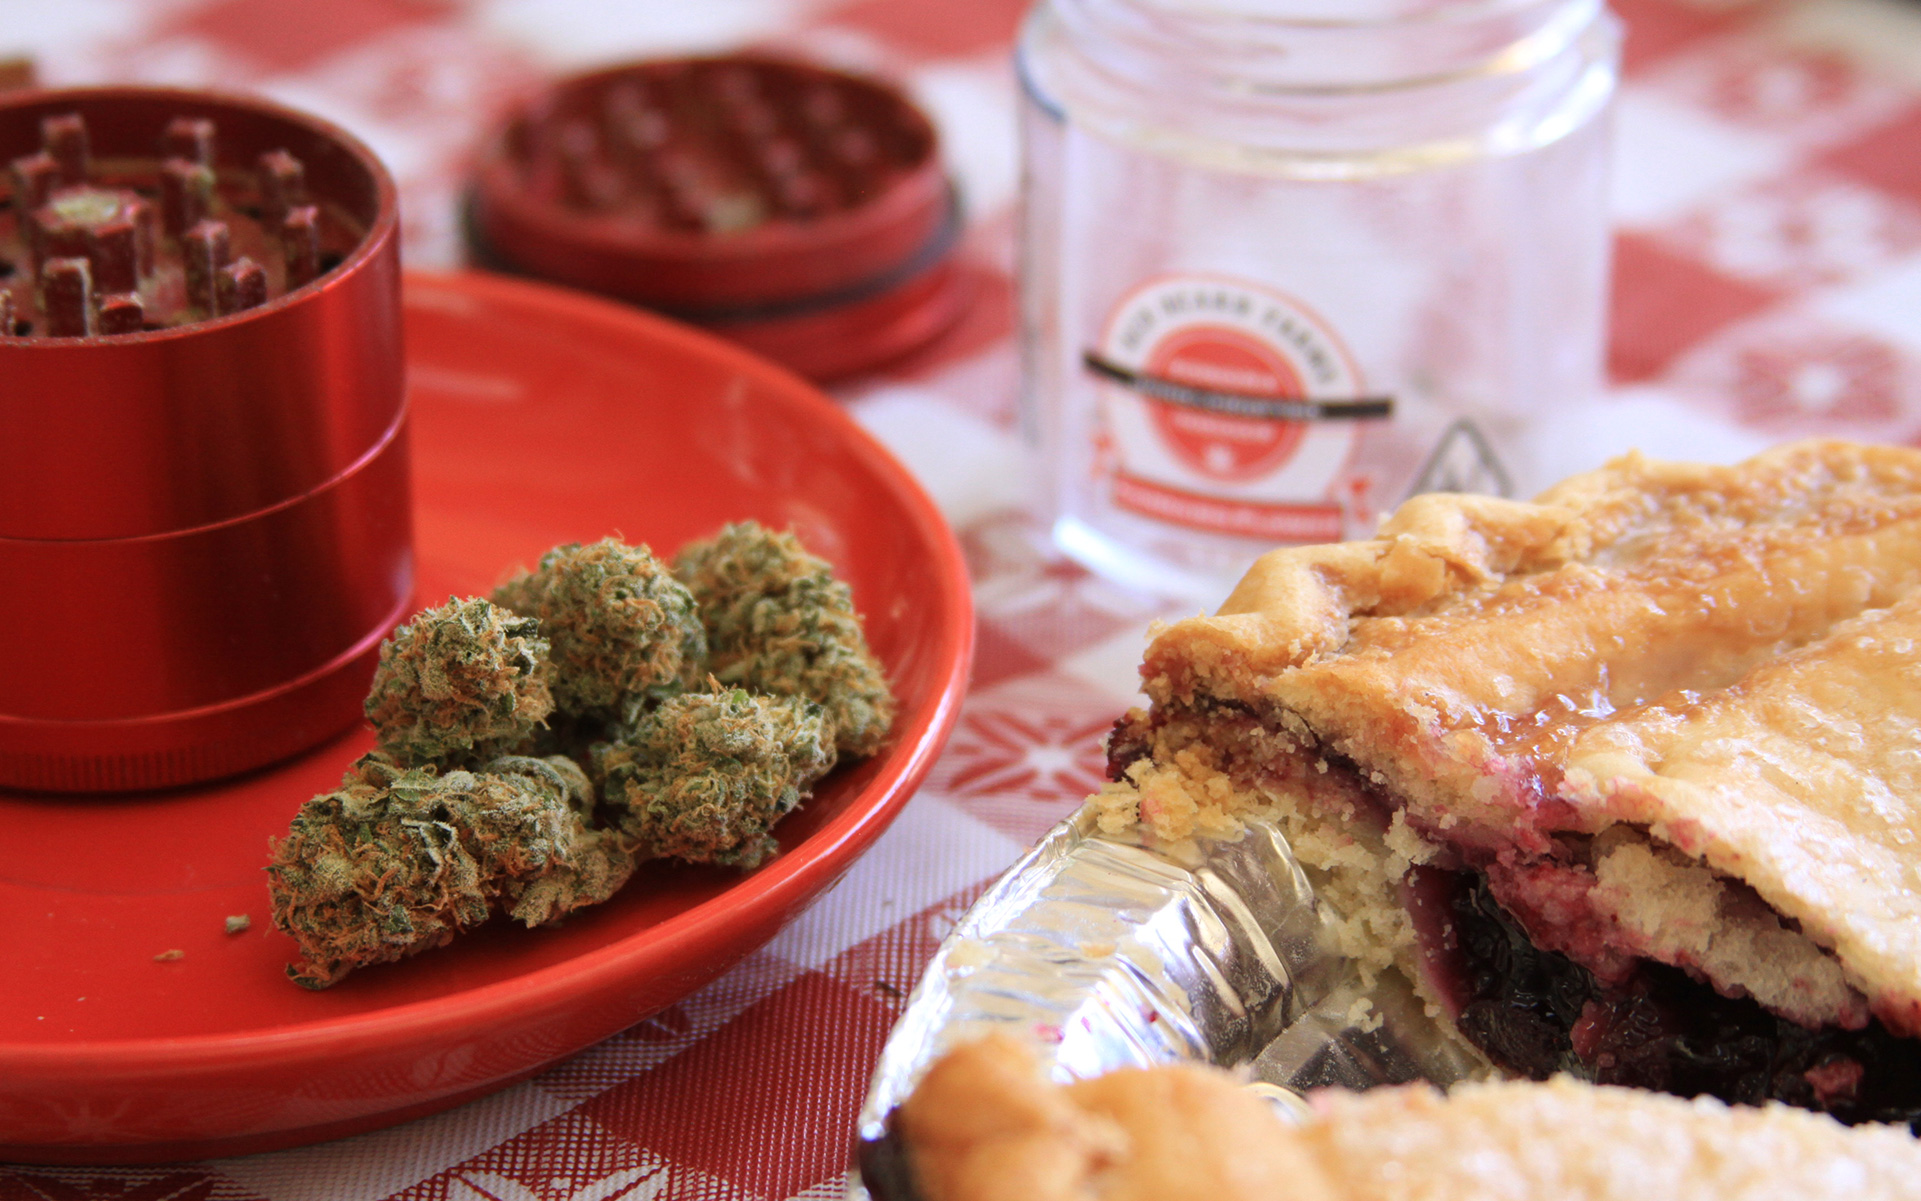 Check Out These Mouthwatering Dessert Strains Sweetening California Menus